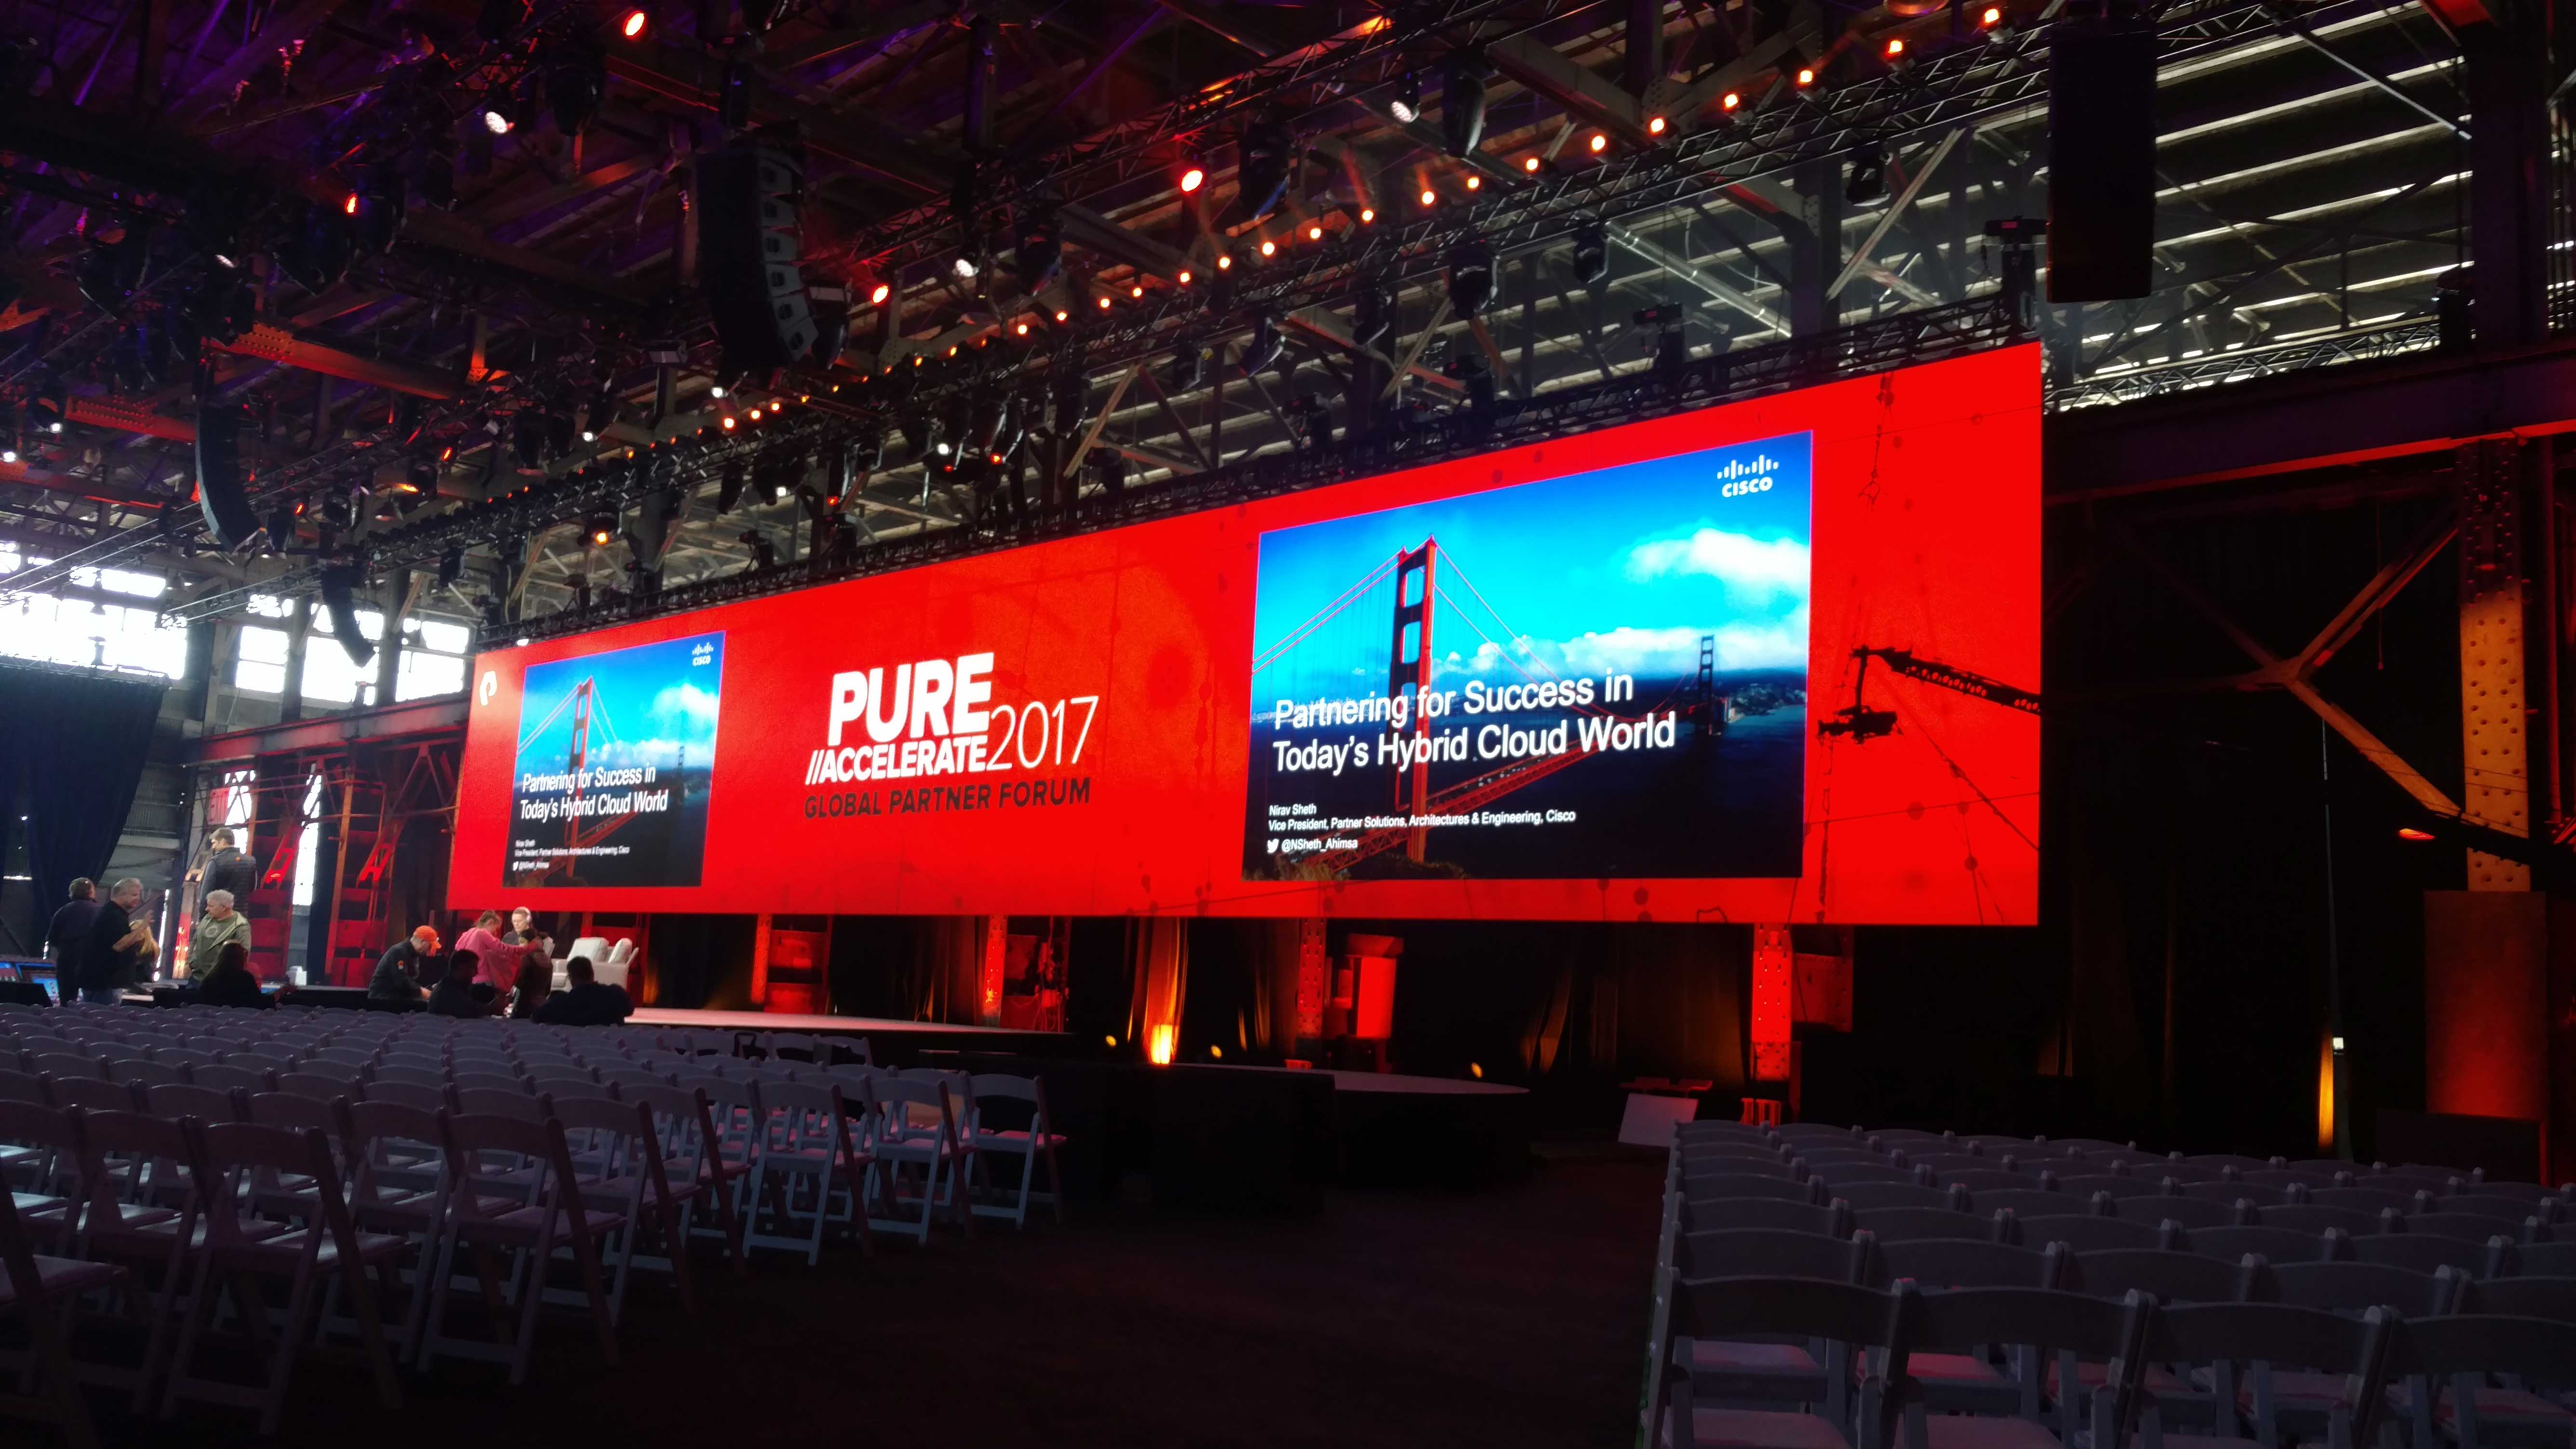 Wide Interior High-Resolution LED Screen for the Pure Accelerate 2017 Global Partner Forum